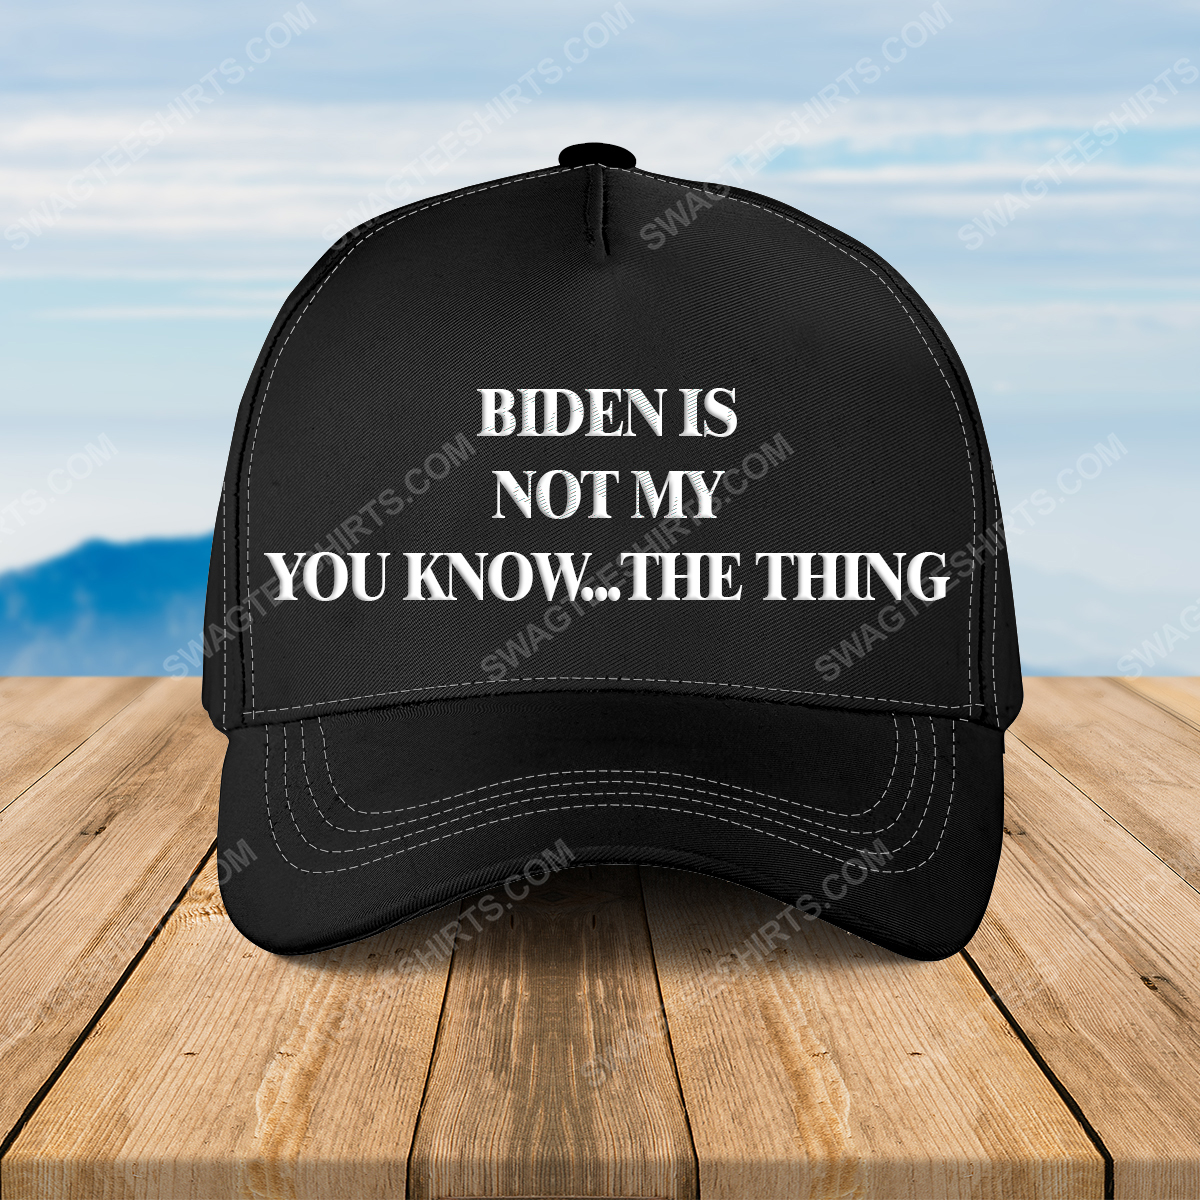 Biden is not my you know the thing full print classic hat